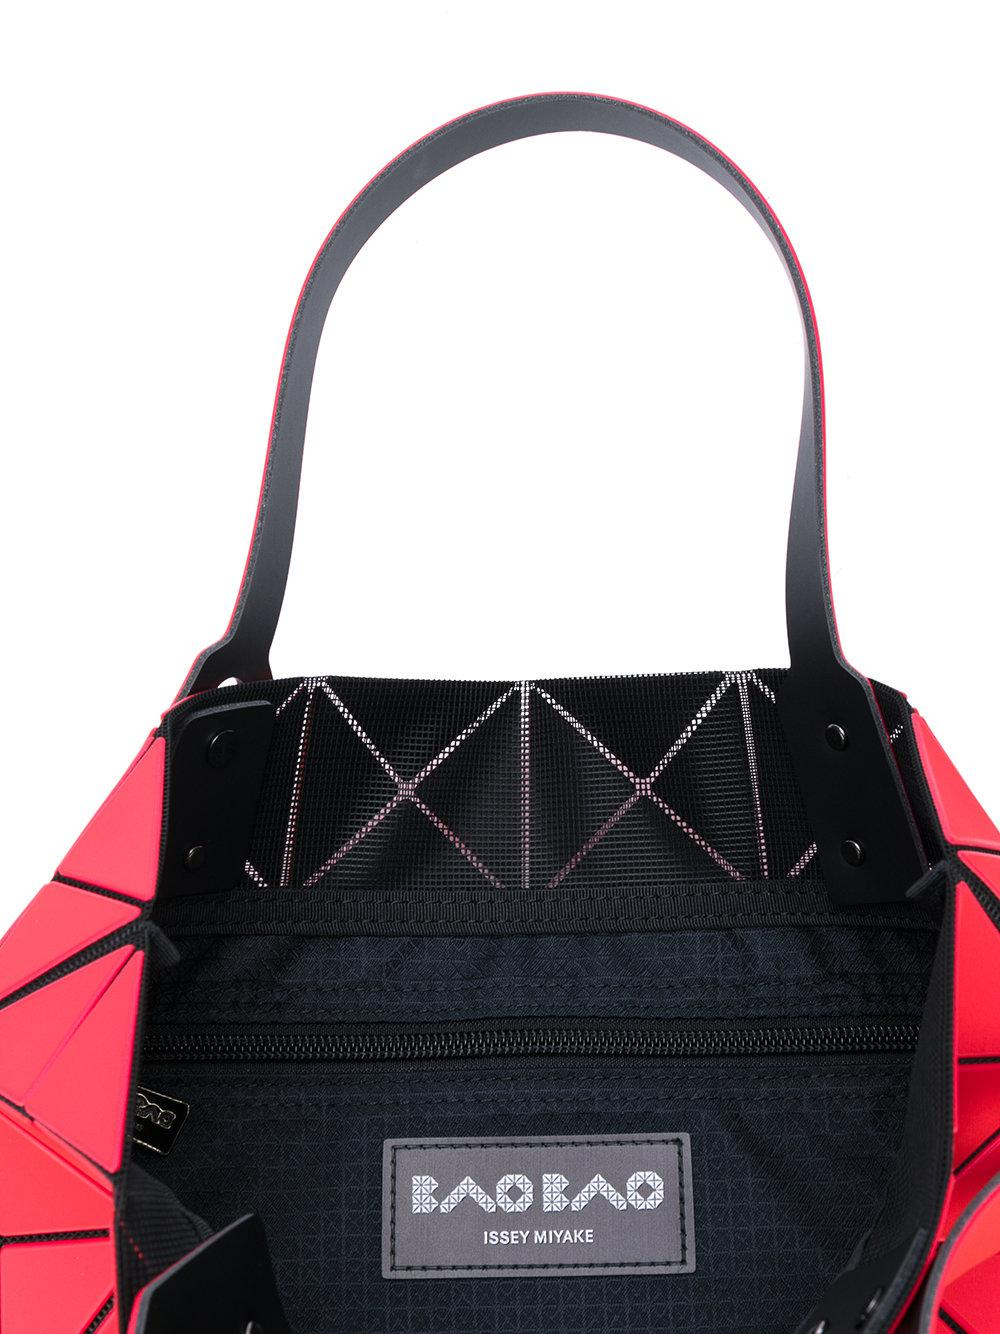 Bao Bao Issey Miyake Synthetic Prism Tote in Red